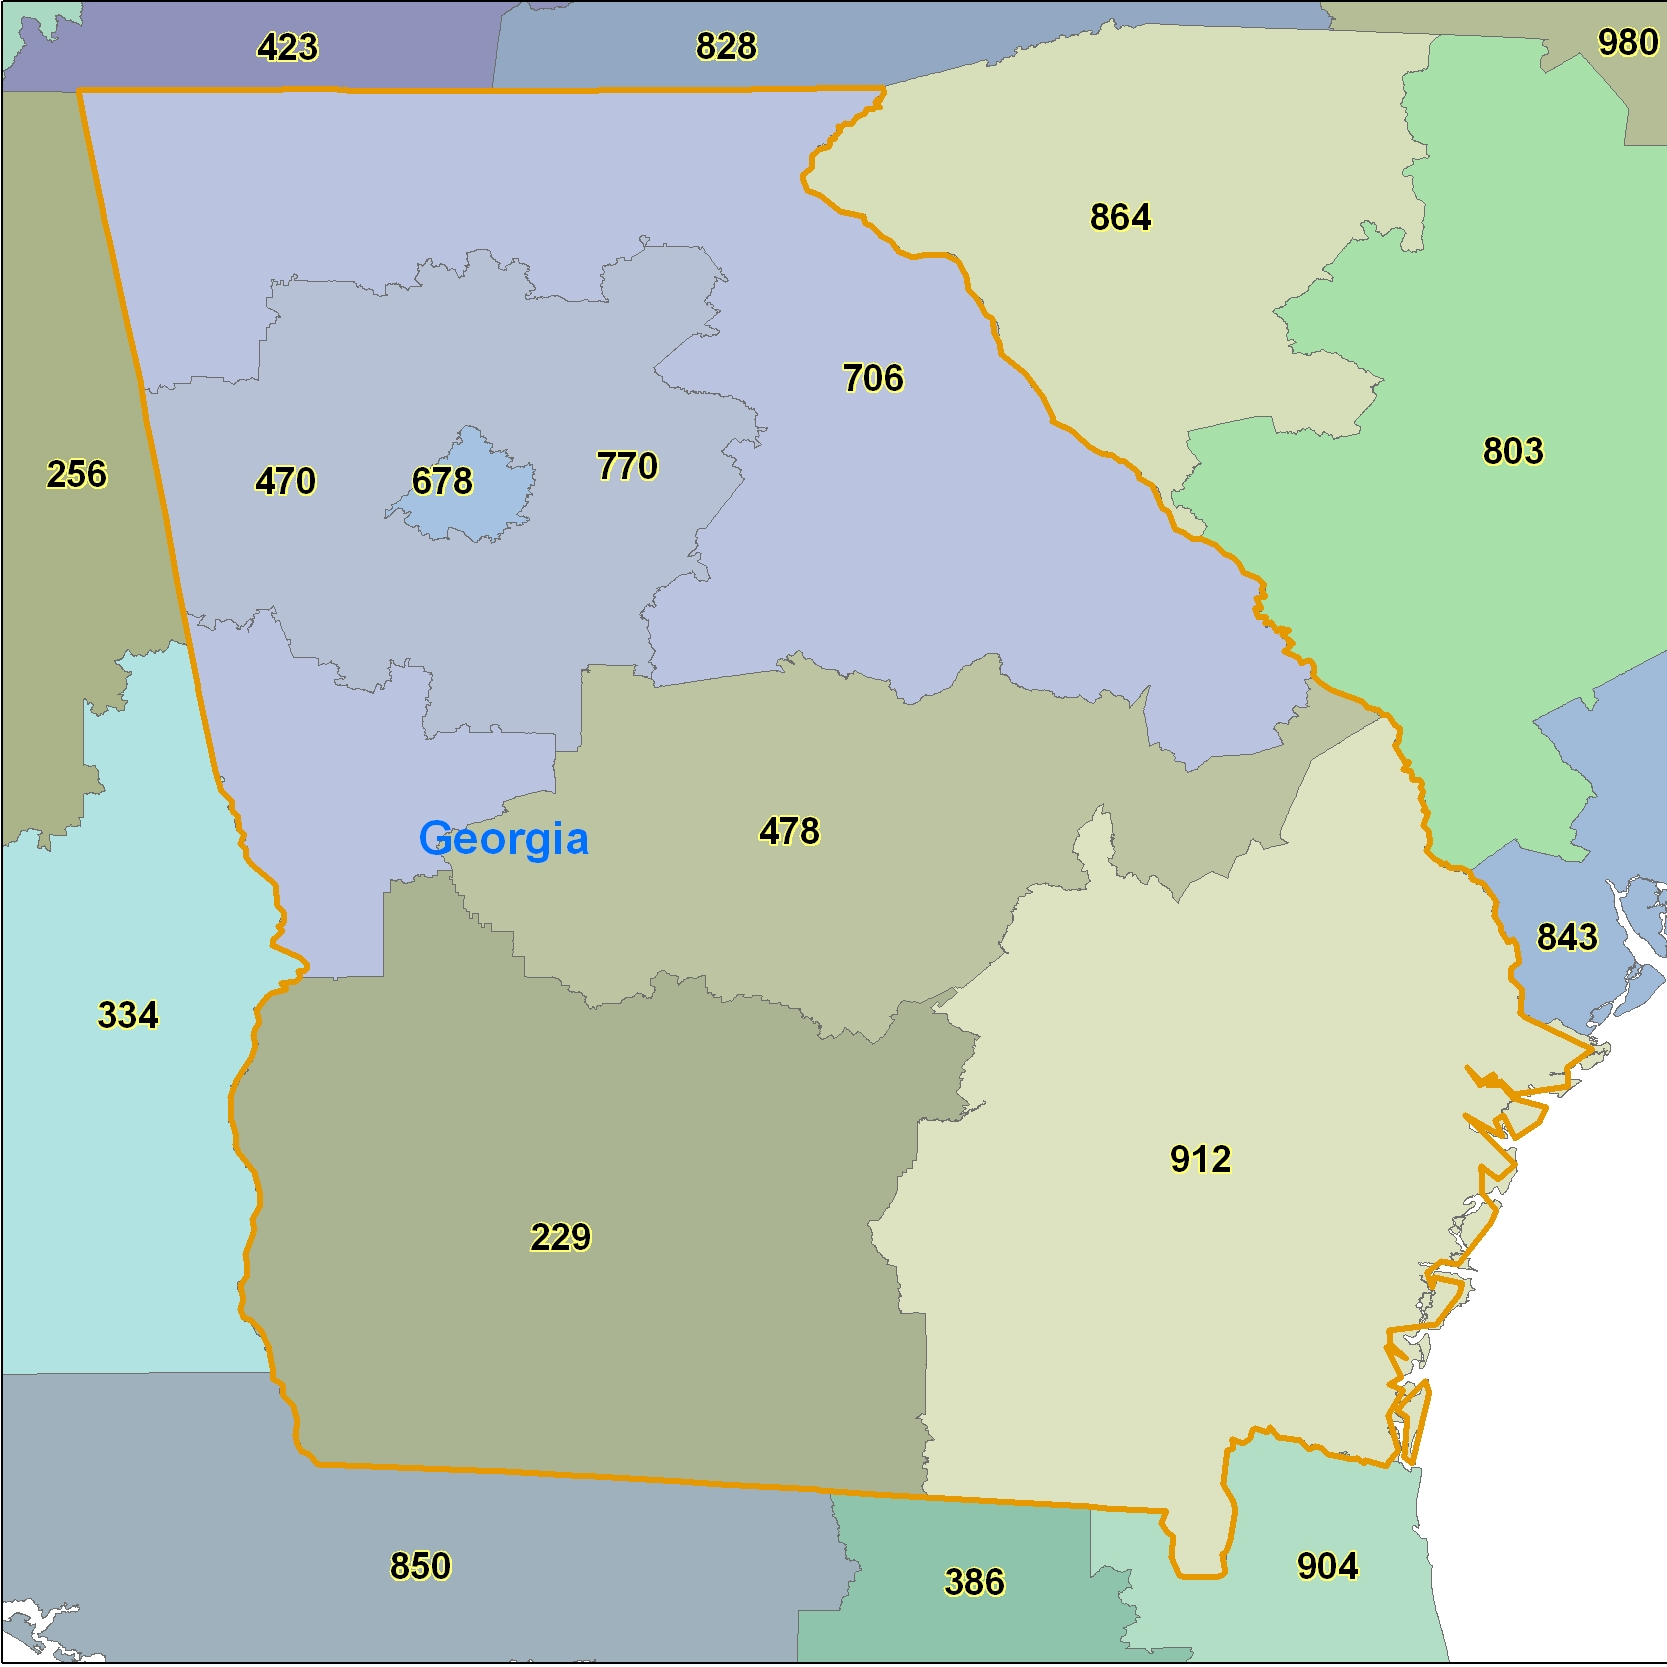 Georgia area code maps georgia telephone area code maps free georgia ga area code map gumiabroncs Choice Image